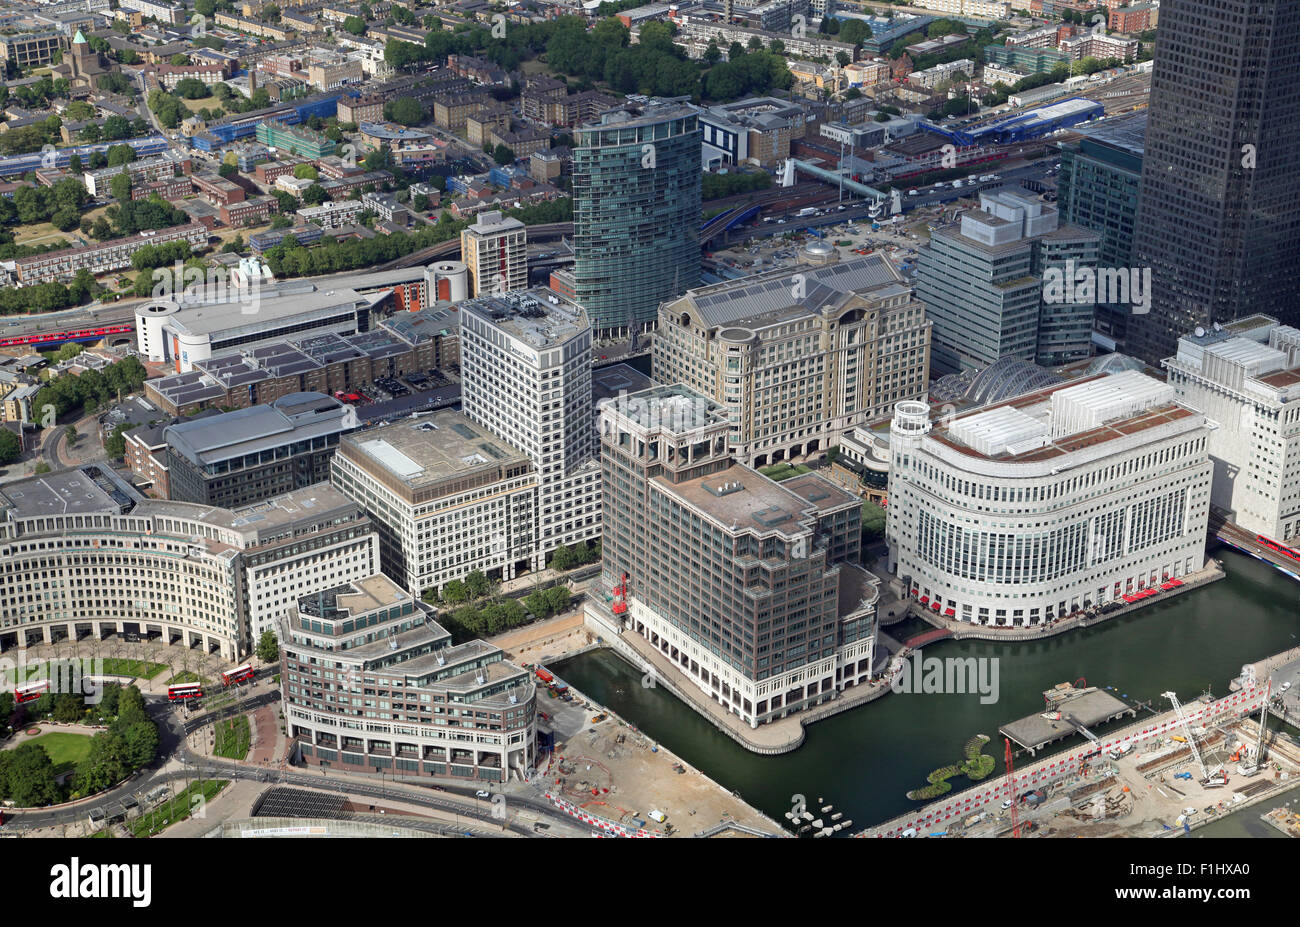 aerial view of Middle Dock and West India Road in Canary Wharf, East London, UK - Stock Image